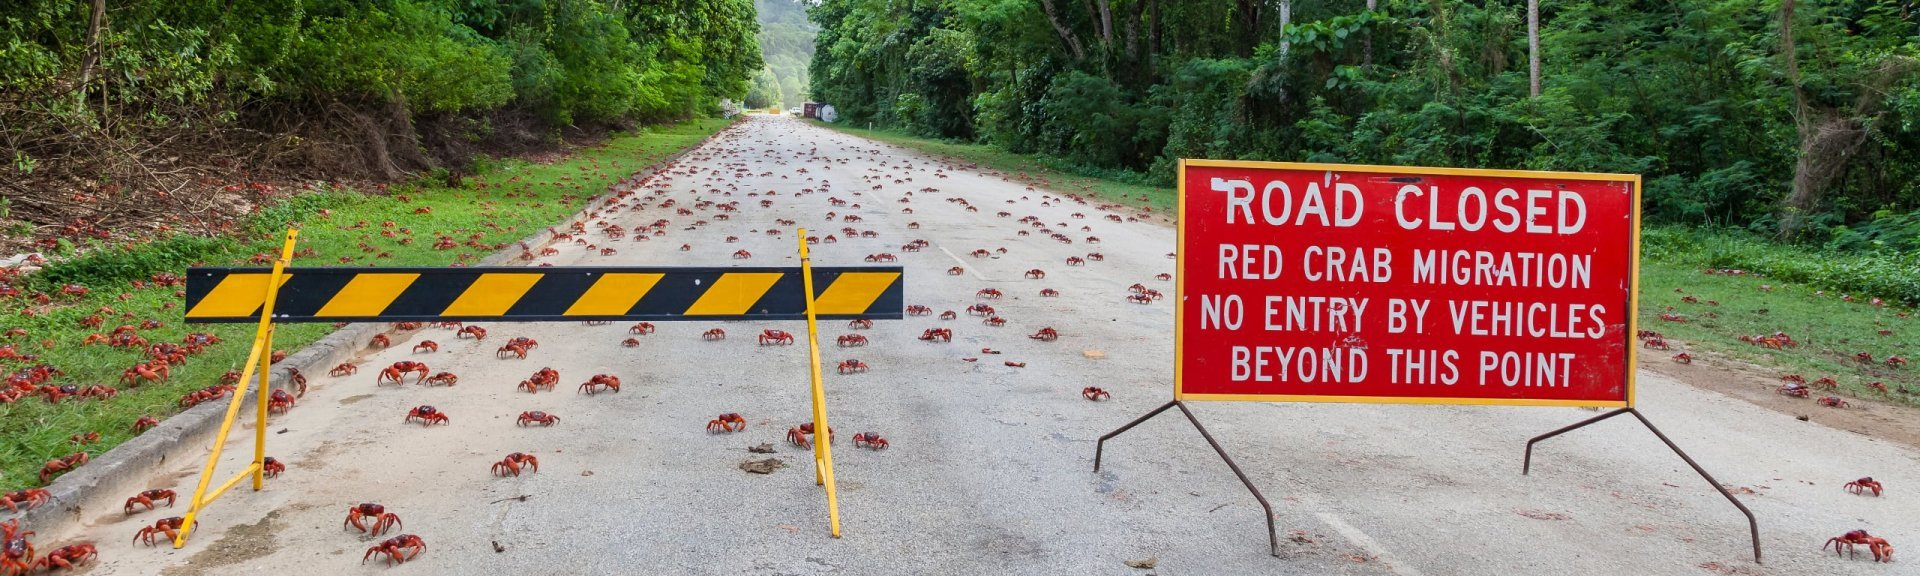 Visiting during the red crab migration requires a bit of extra planning. Photo: [Wondrous World Images](https://www.wondrousworldimages.com.au)